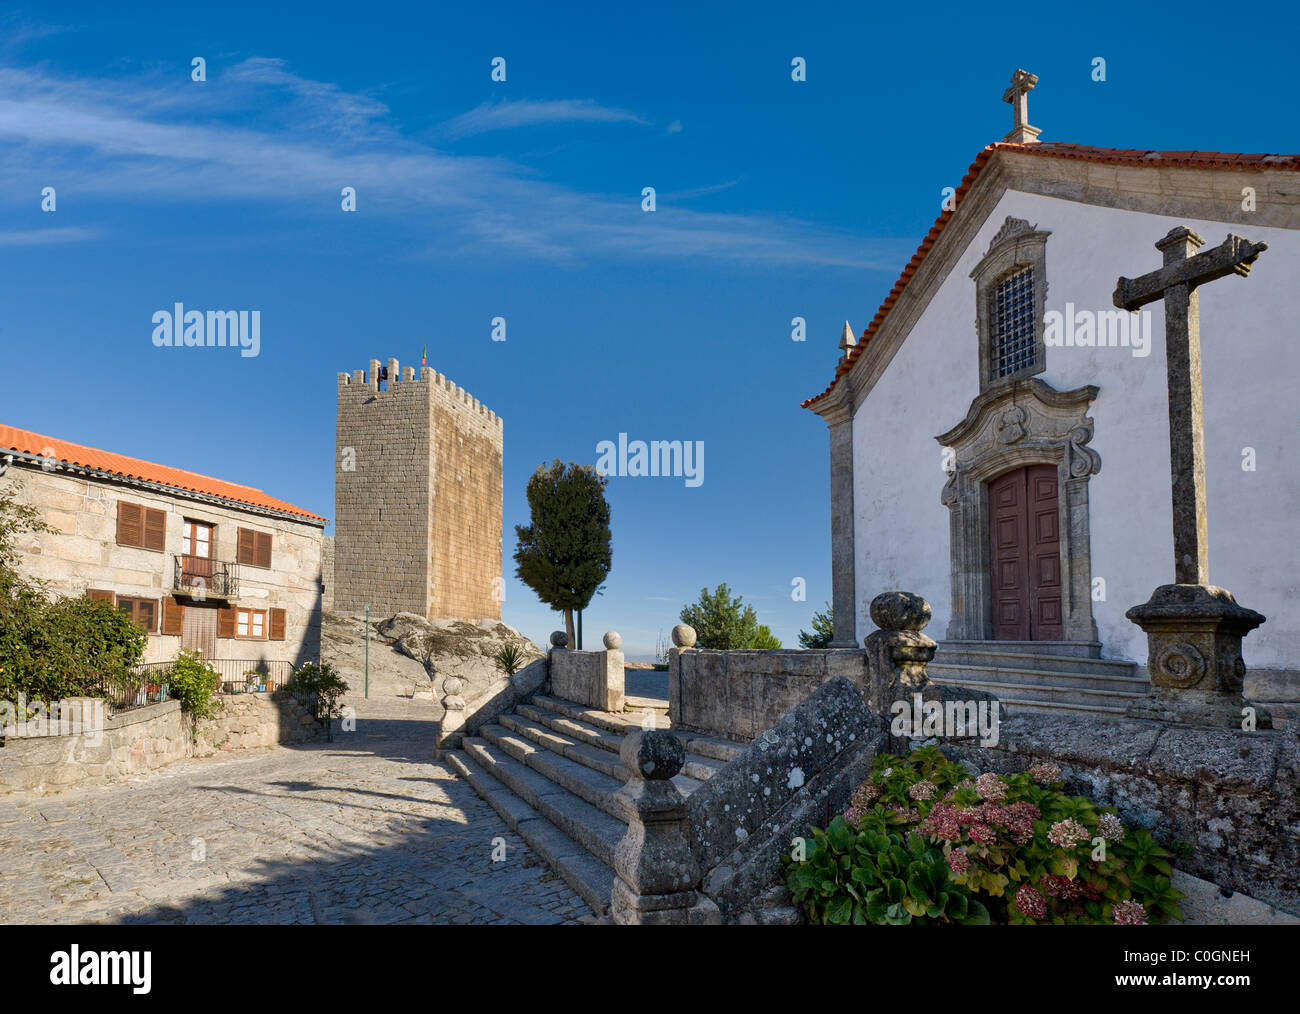 Portugal, the Beira Alta, Linhares church and castle Stock Photo, Royalty Free Image 34788841